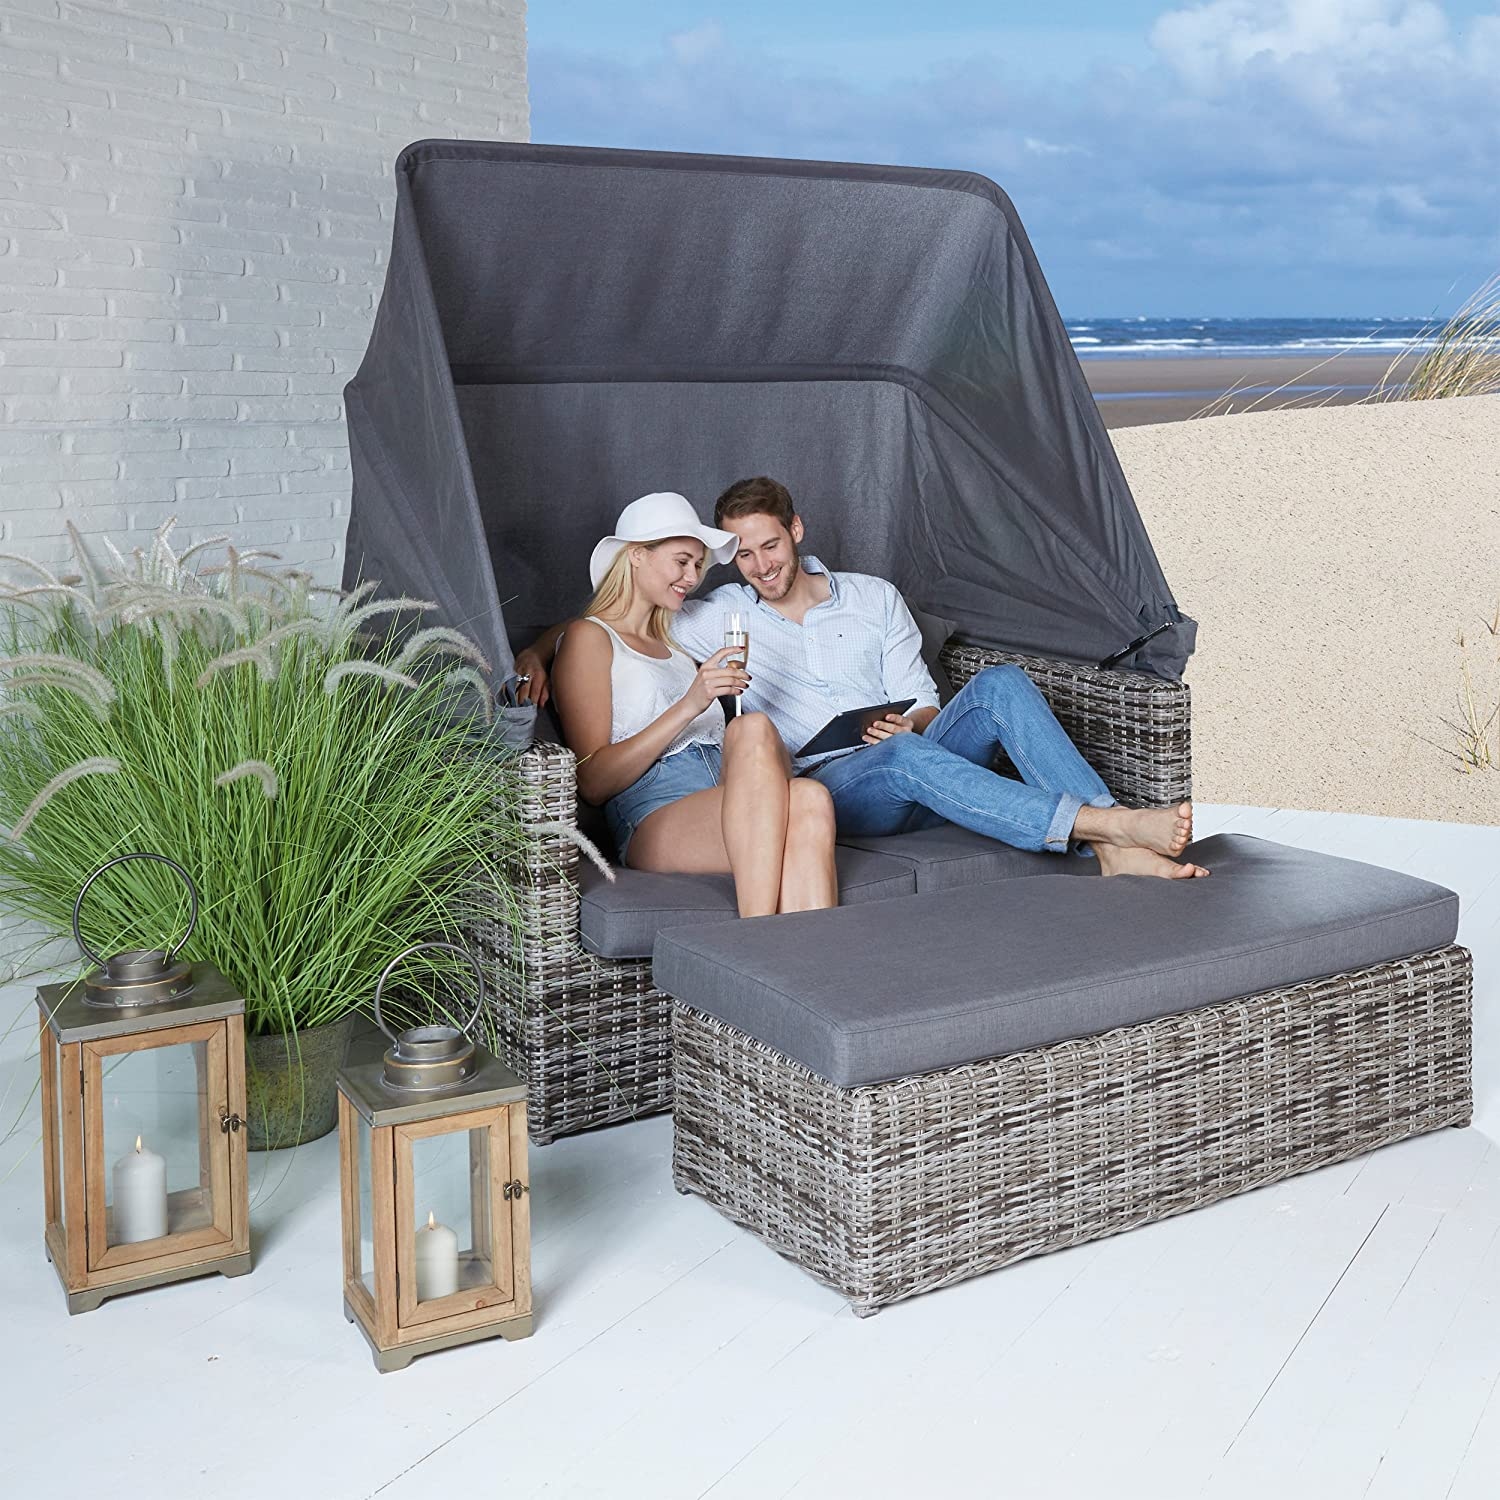 poly rattan strandkorb set sonneninsel gartenm bel strandmuschel braun 2 teilig jetzt kaufen. Black Bedroom Furniture Sets. Home Design Ideas